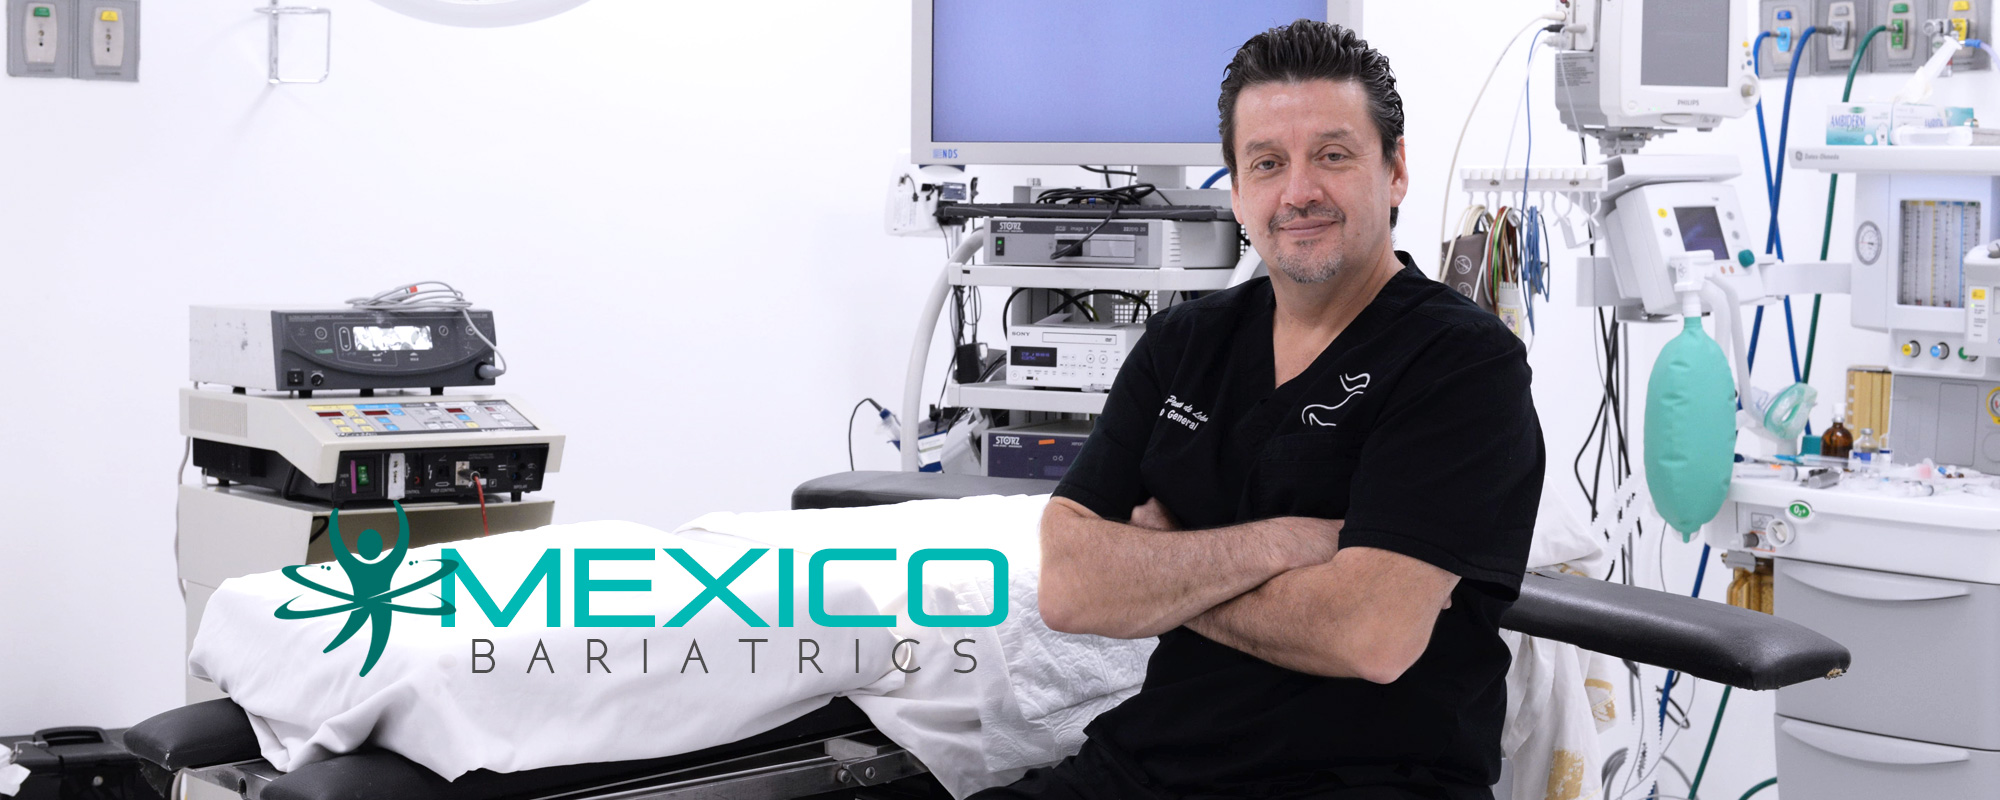 Dr. Jaime Ponce de Leon Palomares, board certified bariatric surgeon in Mexico.